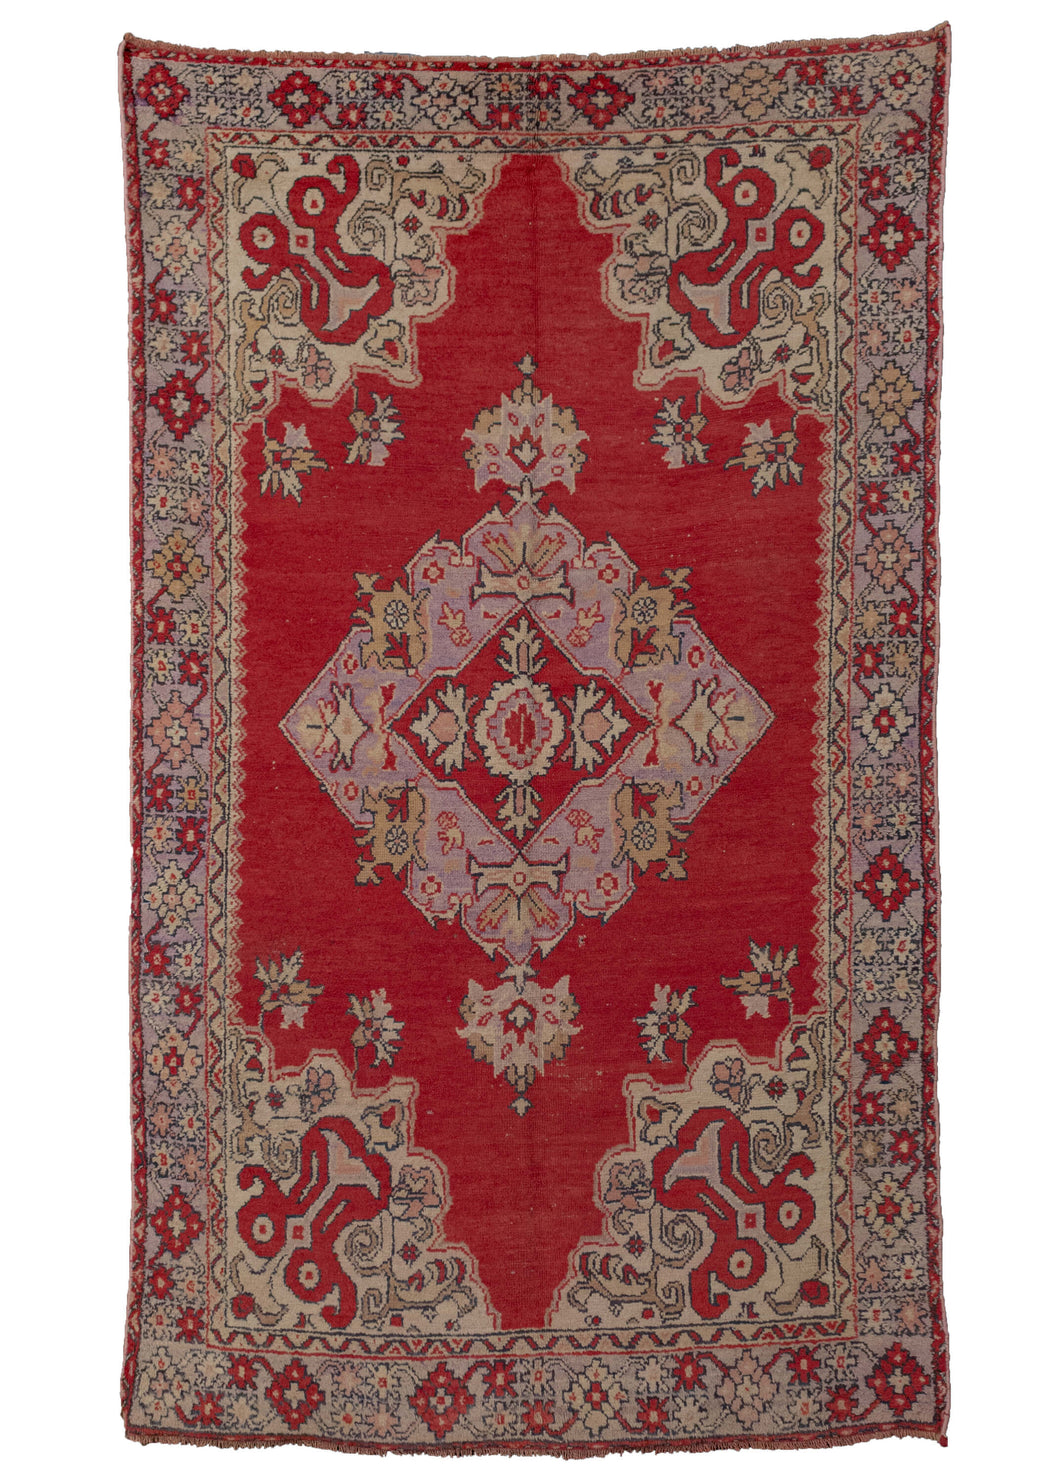 Vintage Turkish Oushak Rug - 4'6 x 7'8